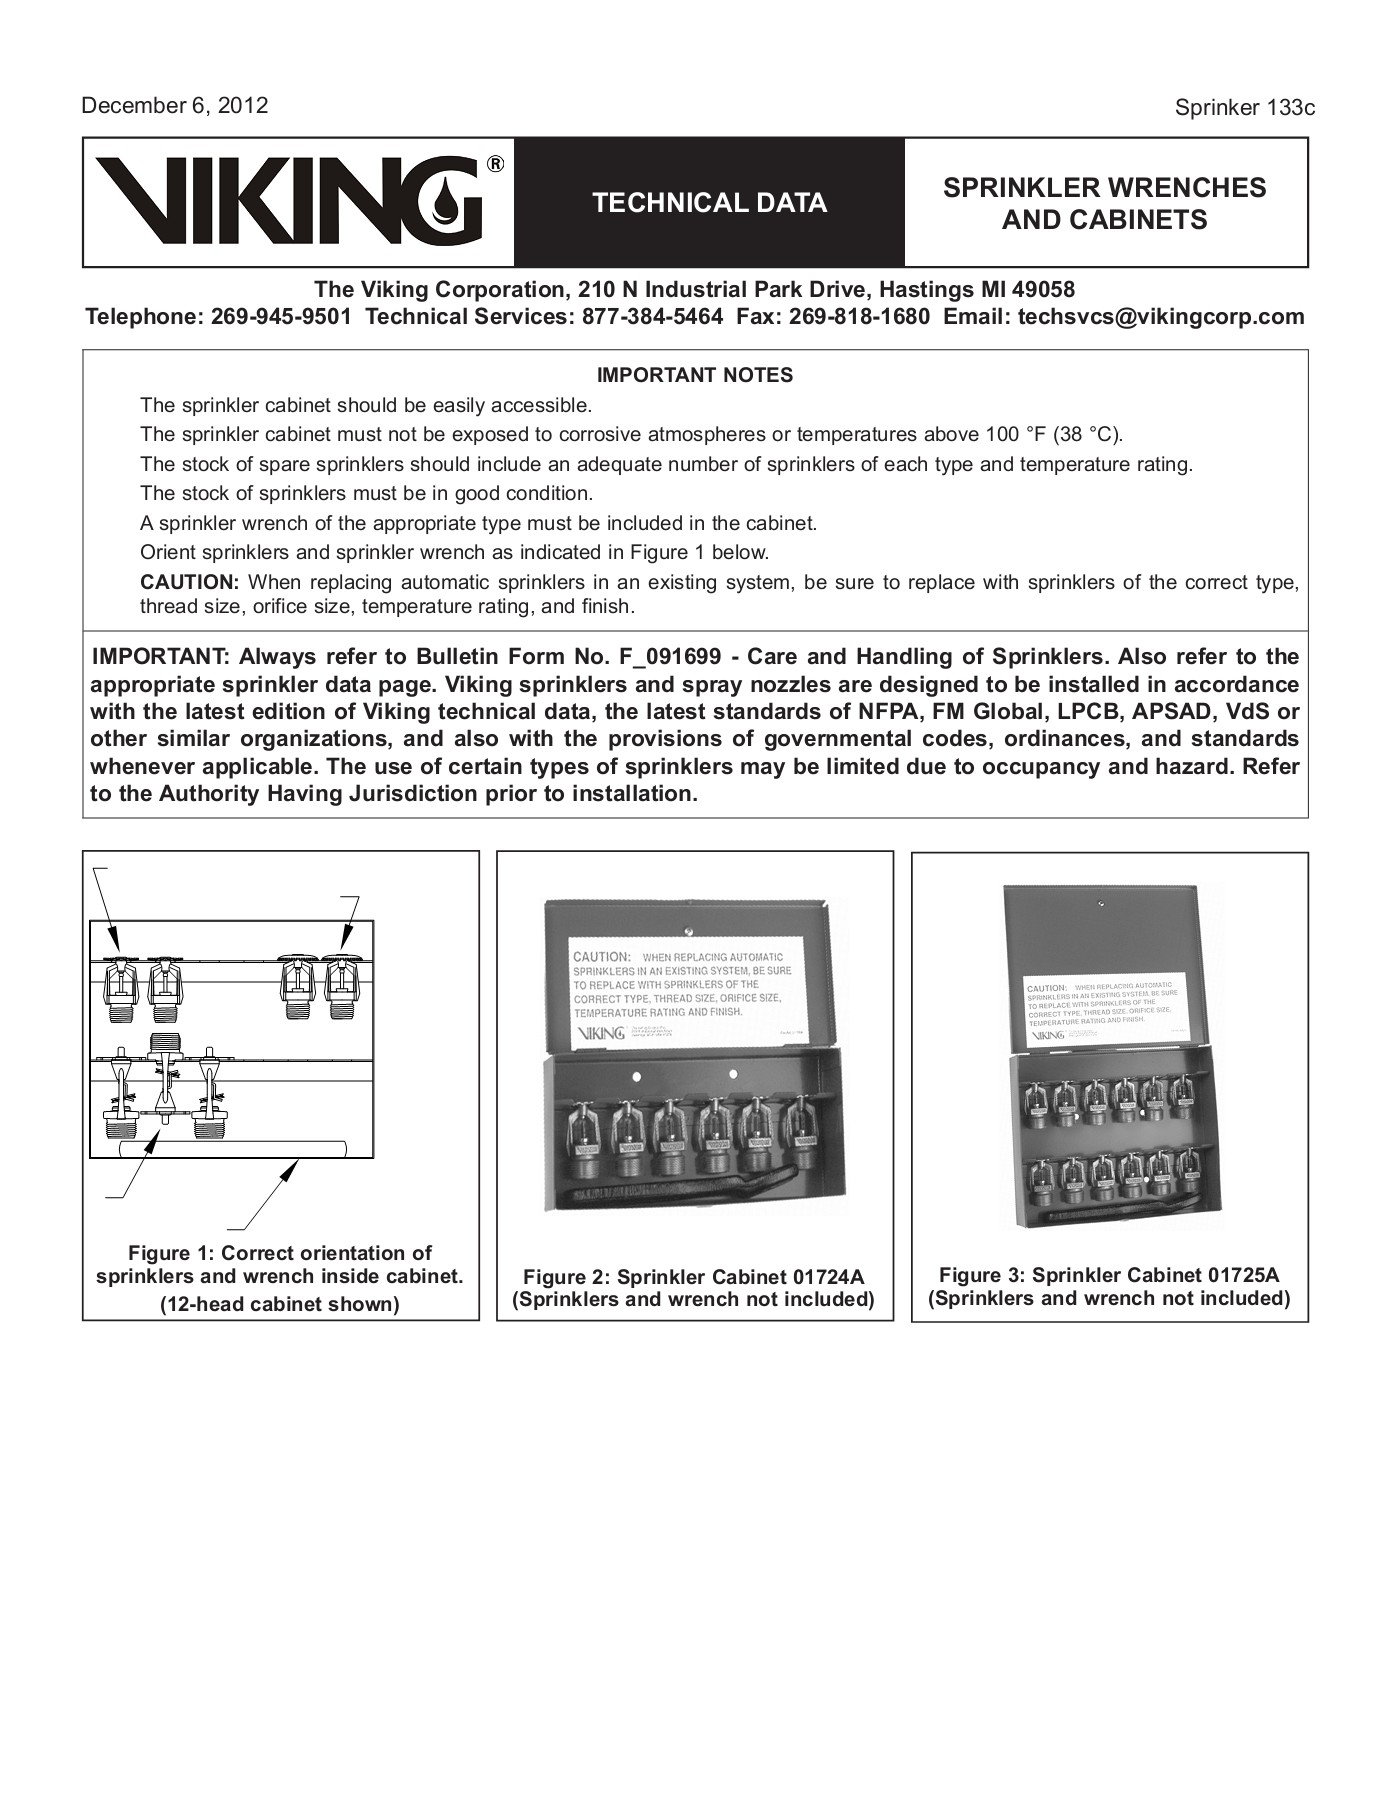 TECHNICAL DATA SPRINKLER WRENCHES AND CABINETS Pages 1 - 6